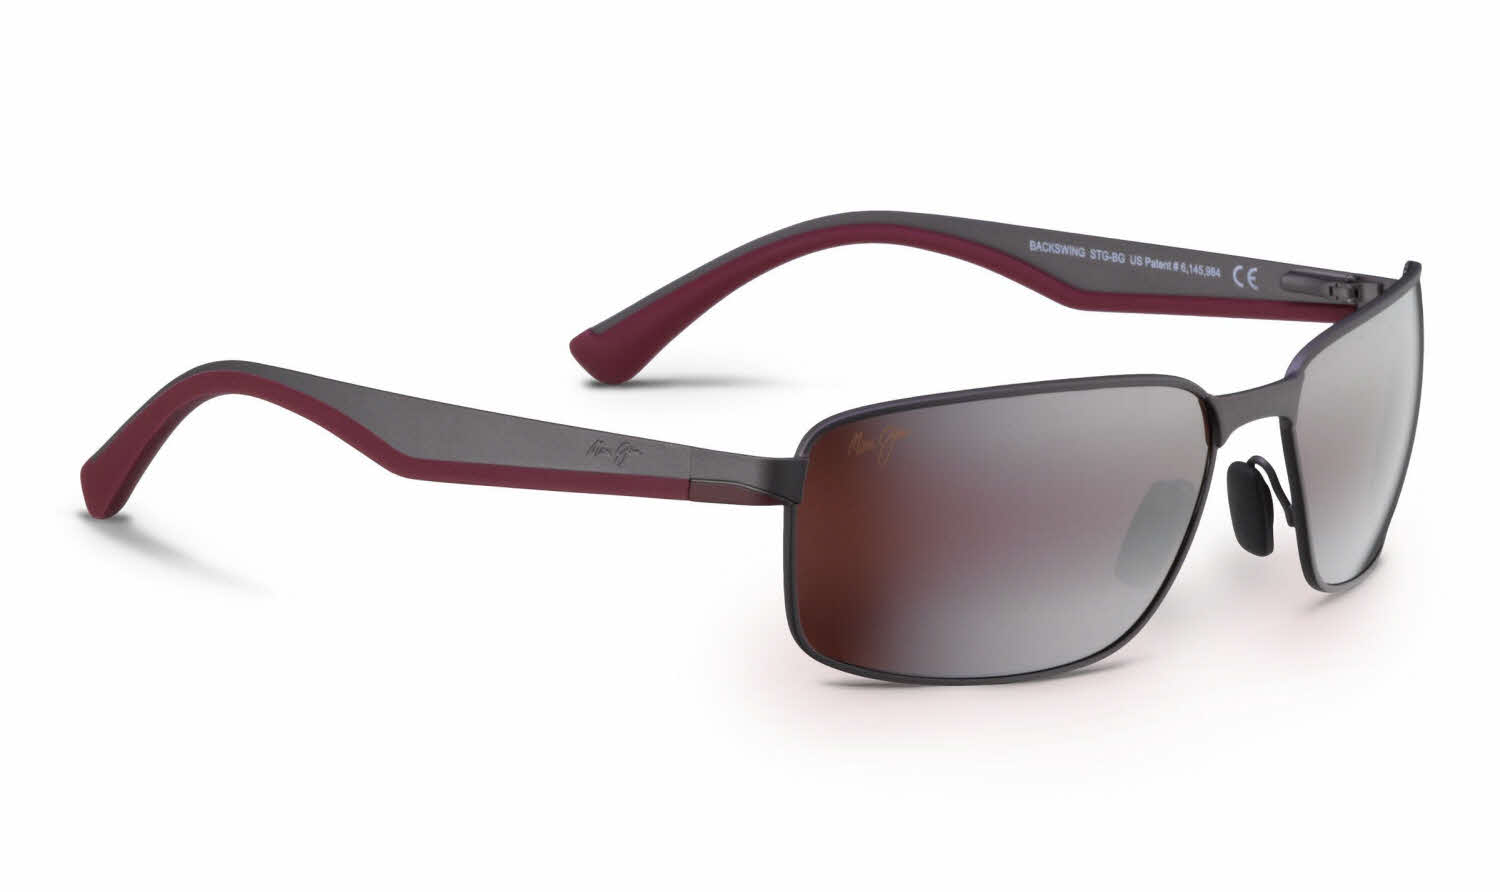 Maui Jim Backswing-709 Sunglasses